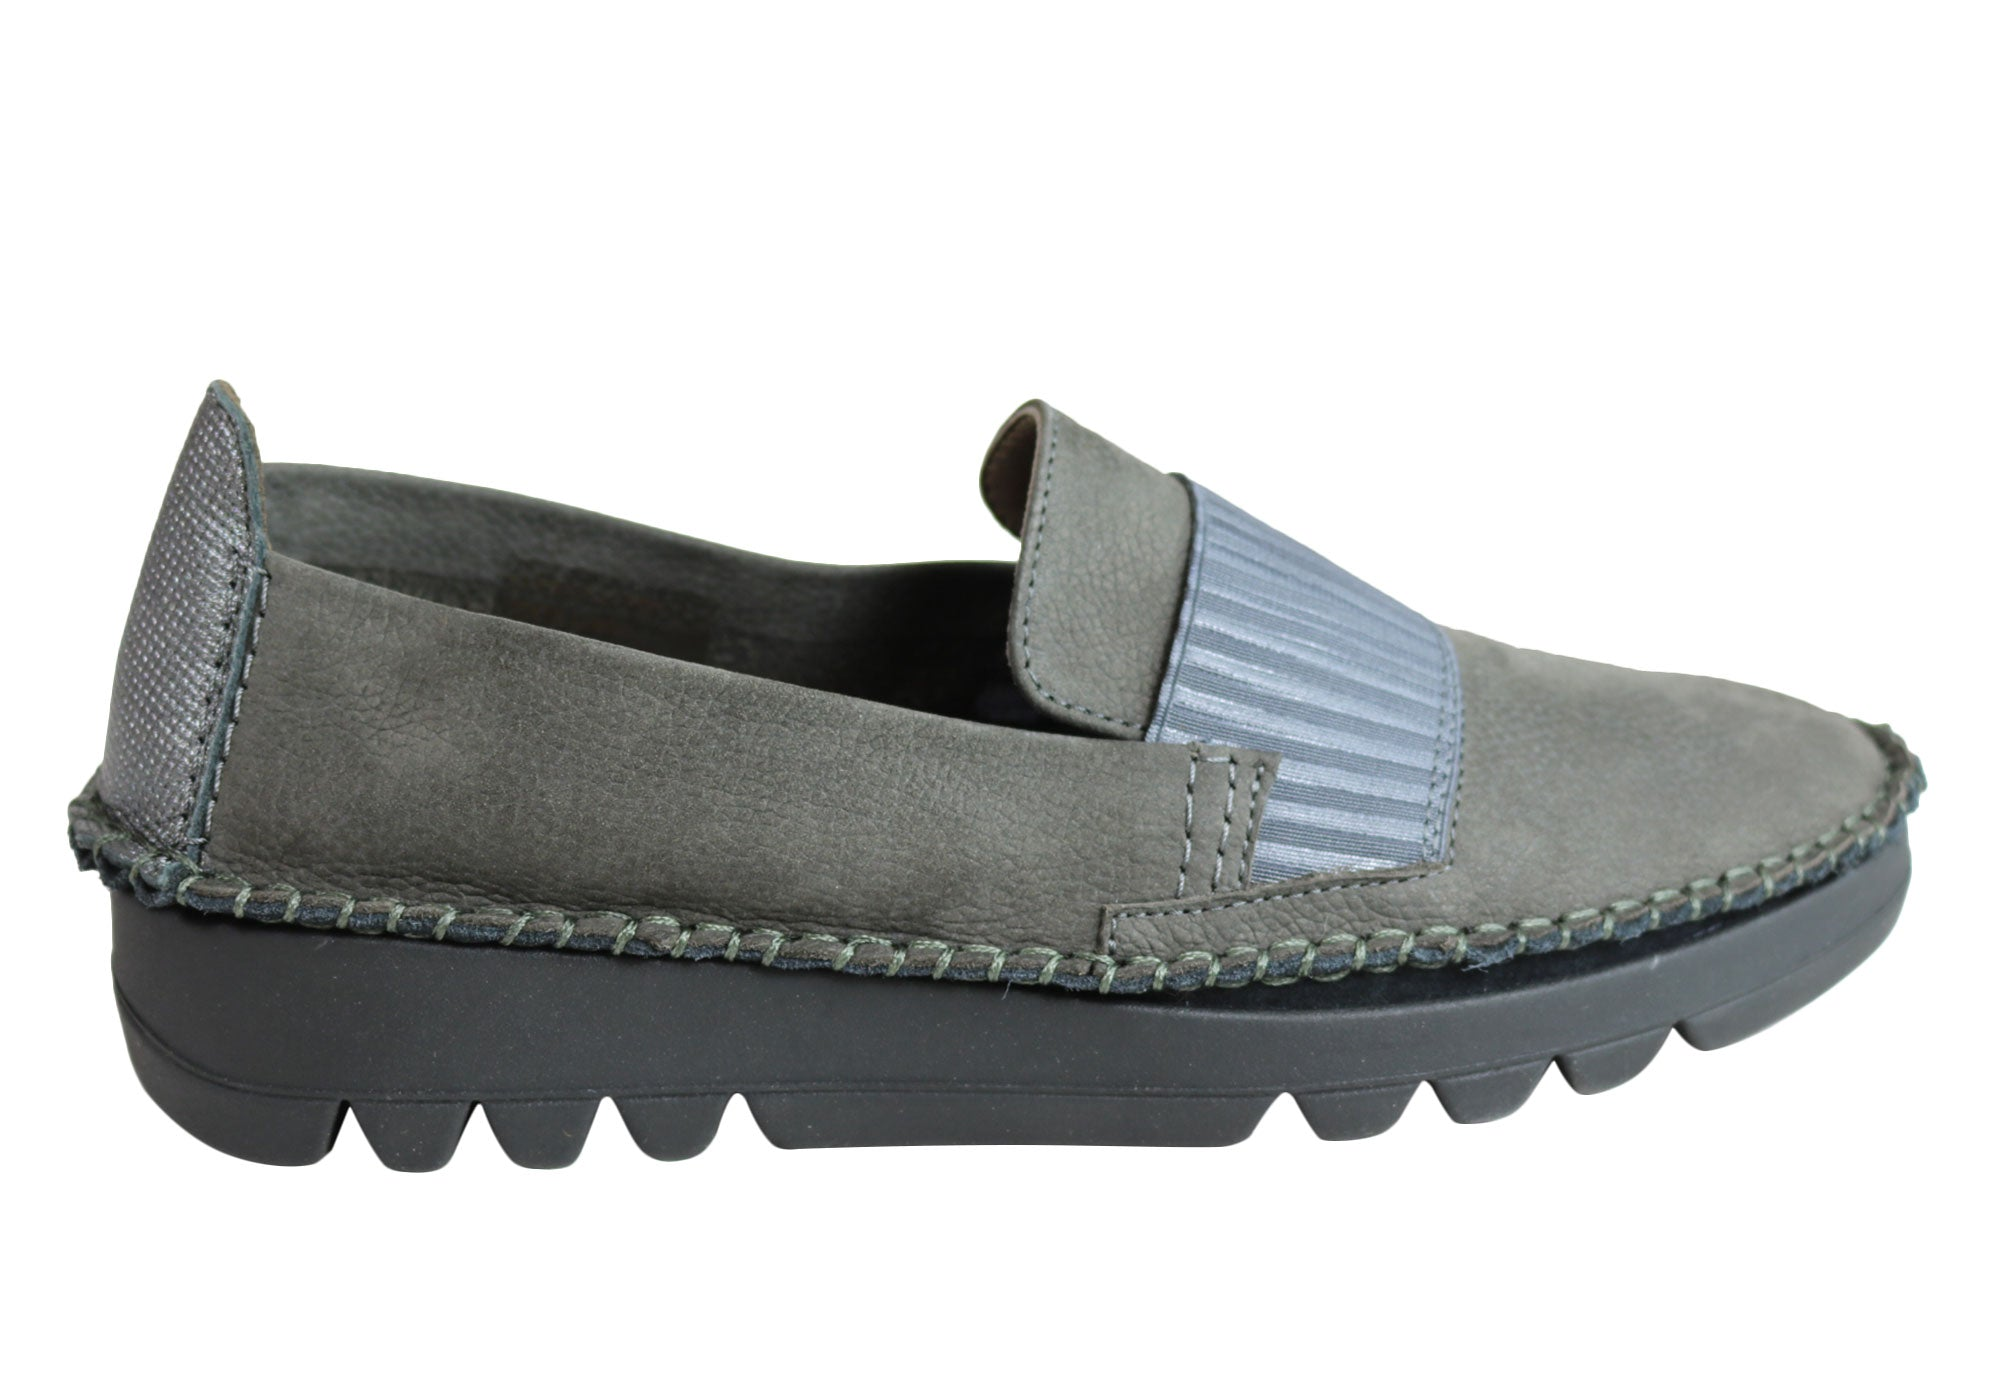 New Flex & Go Ruby Ruby Go Donna Comfort Flexible Pelle Flats Made In Portugal bd7838